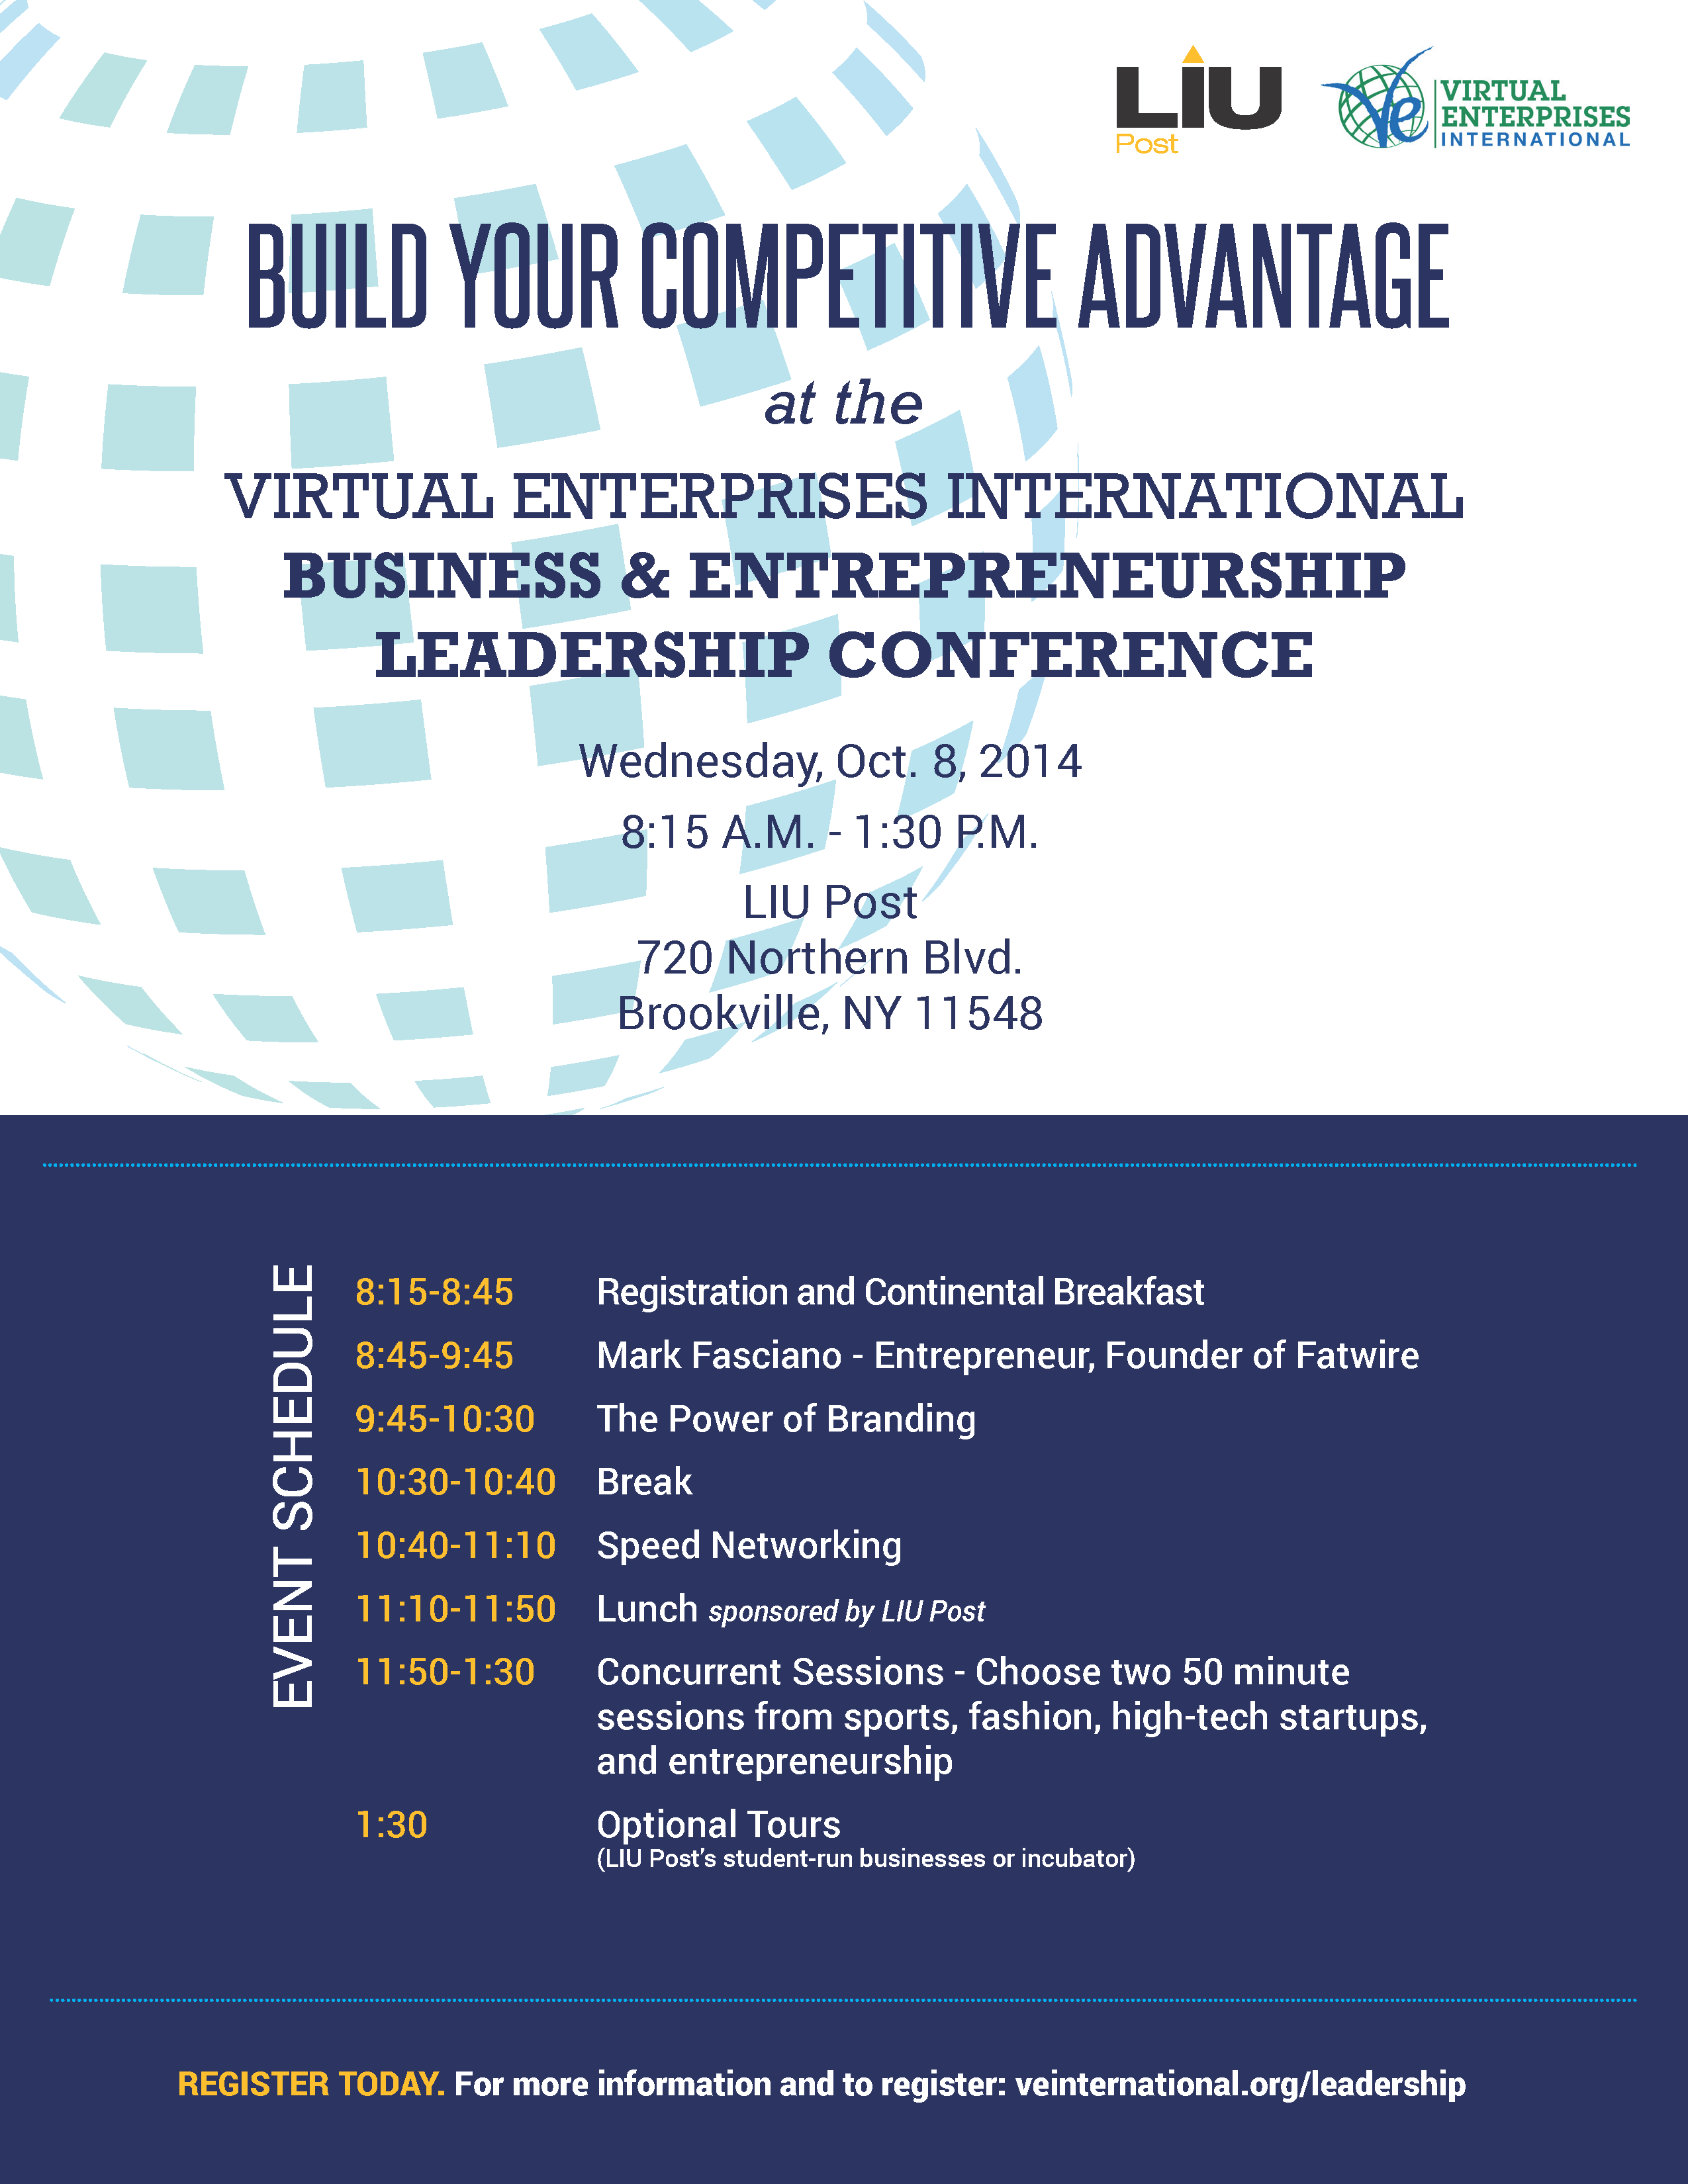 [NYC and Long Island] Register Now to Attend the LIU Leadership Conference on Oct. 8th